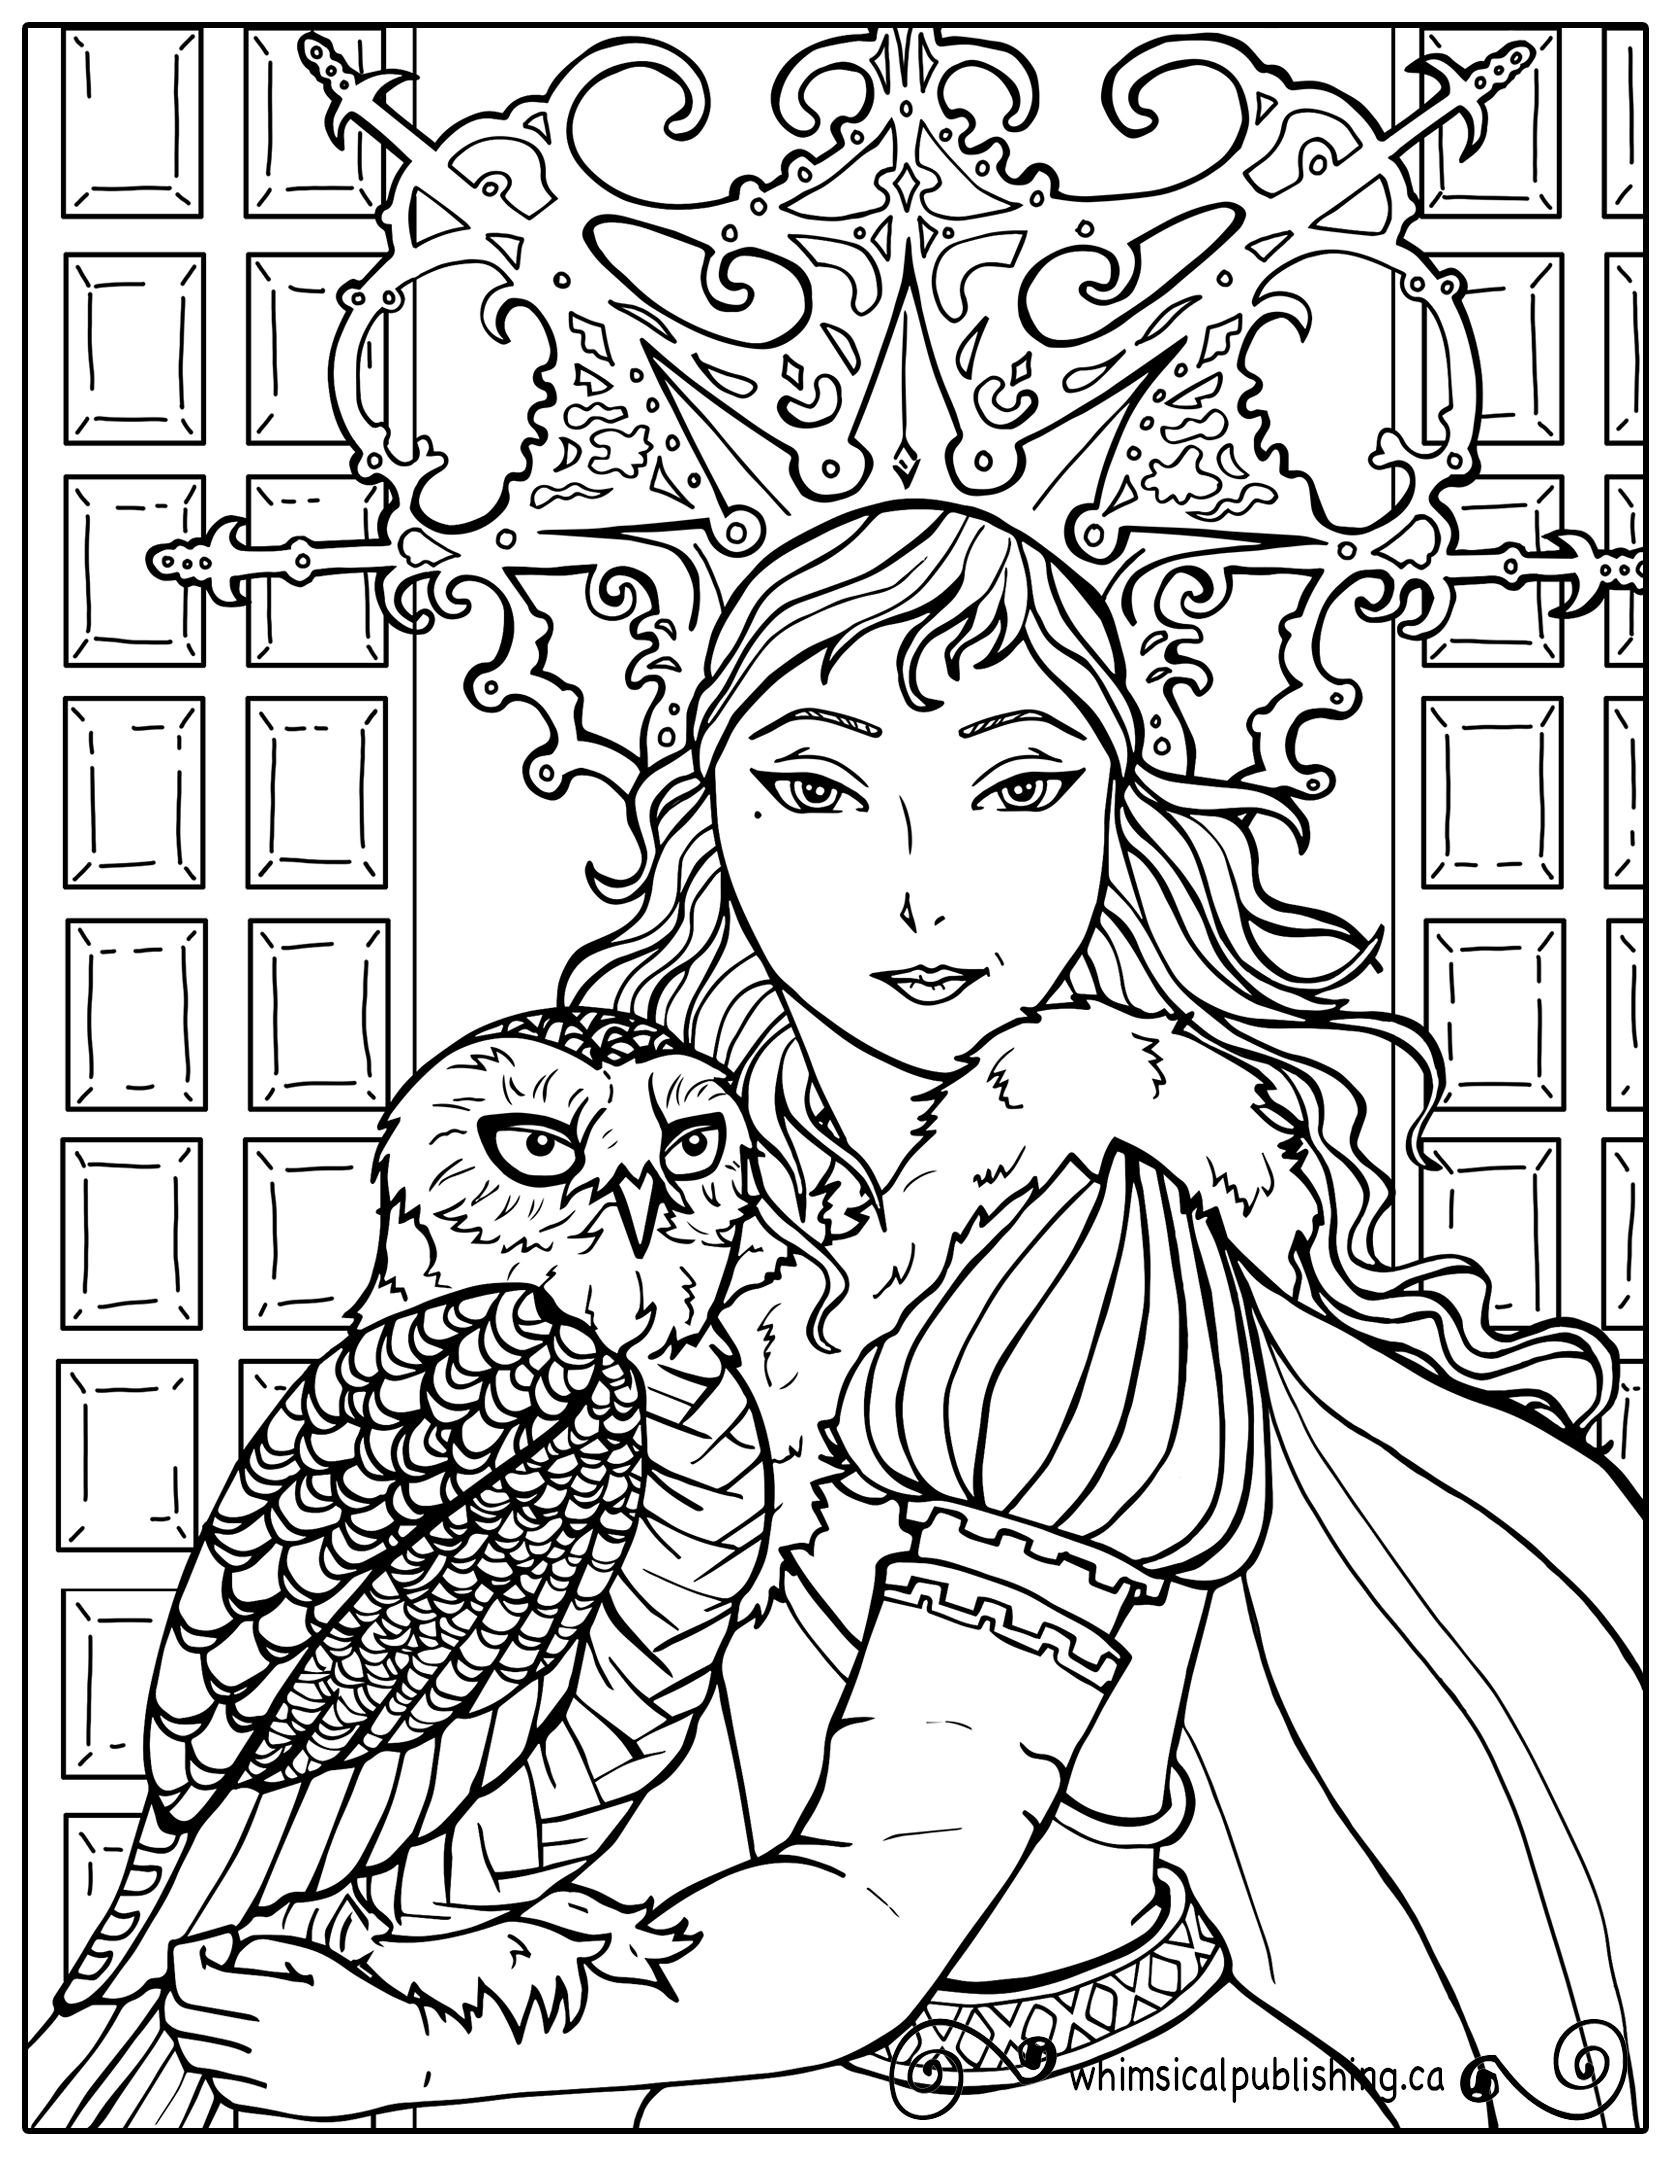 color pages online print monster high coloring pages for free or download pages color online